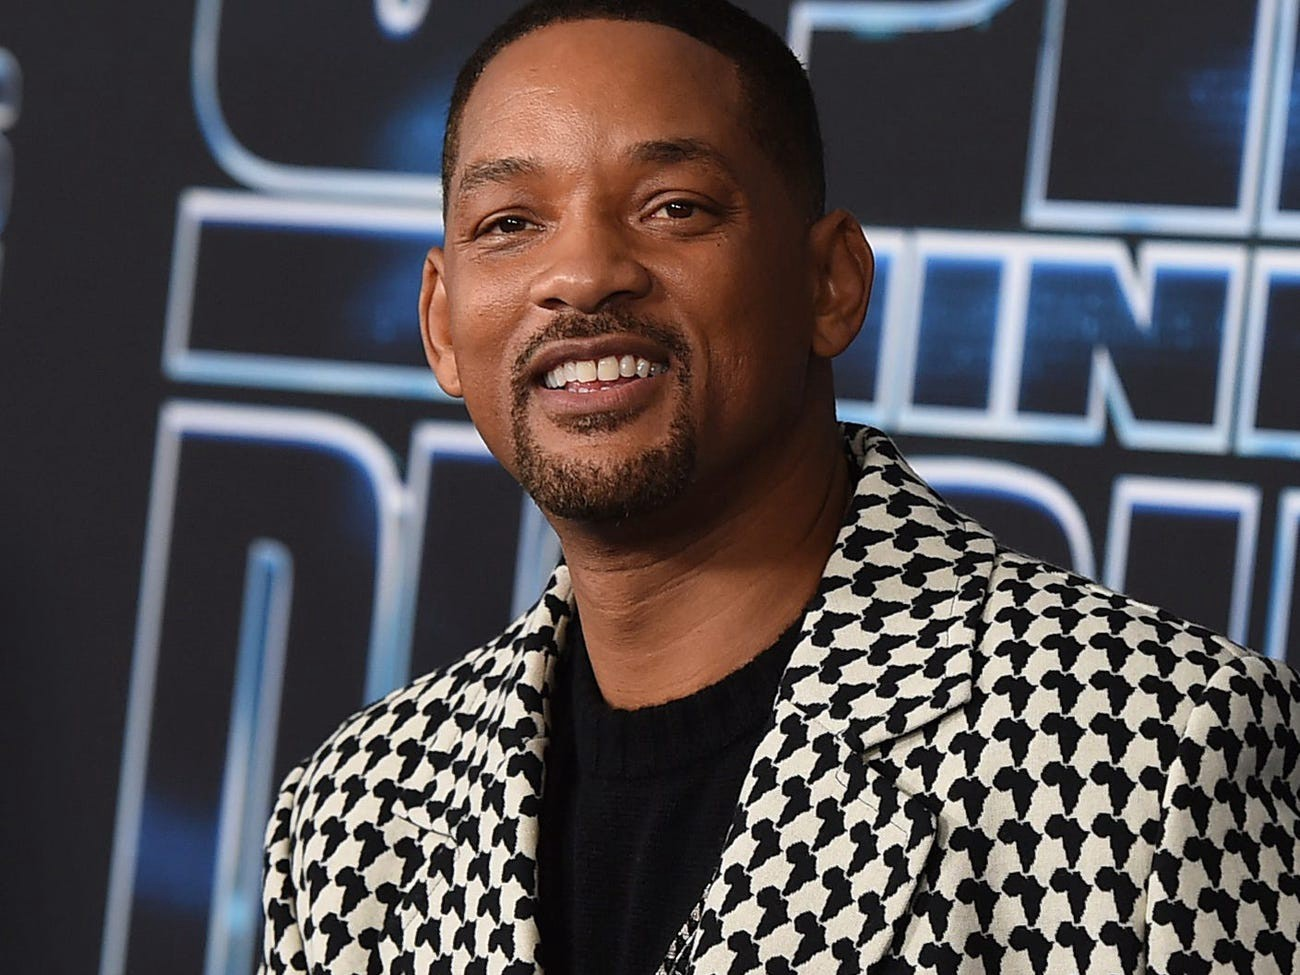 Will Smith at a movie premiere in 2019.